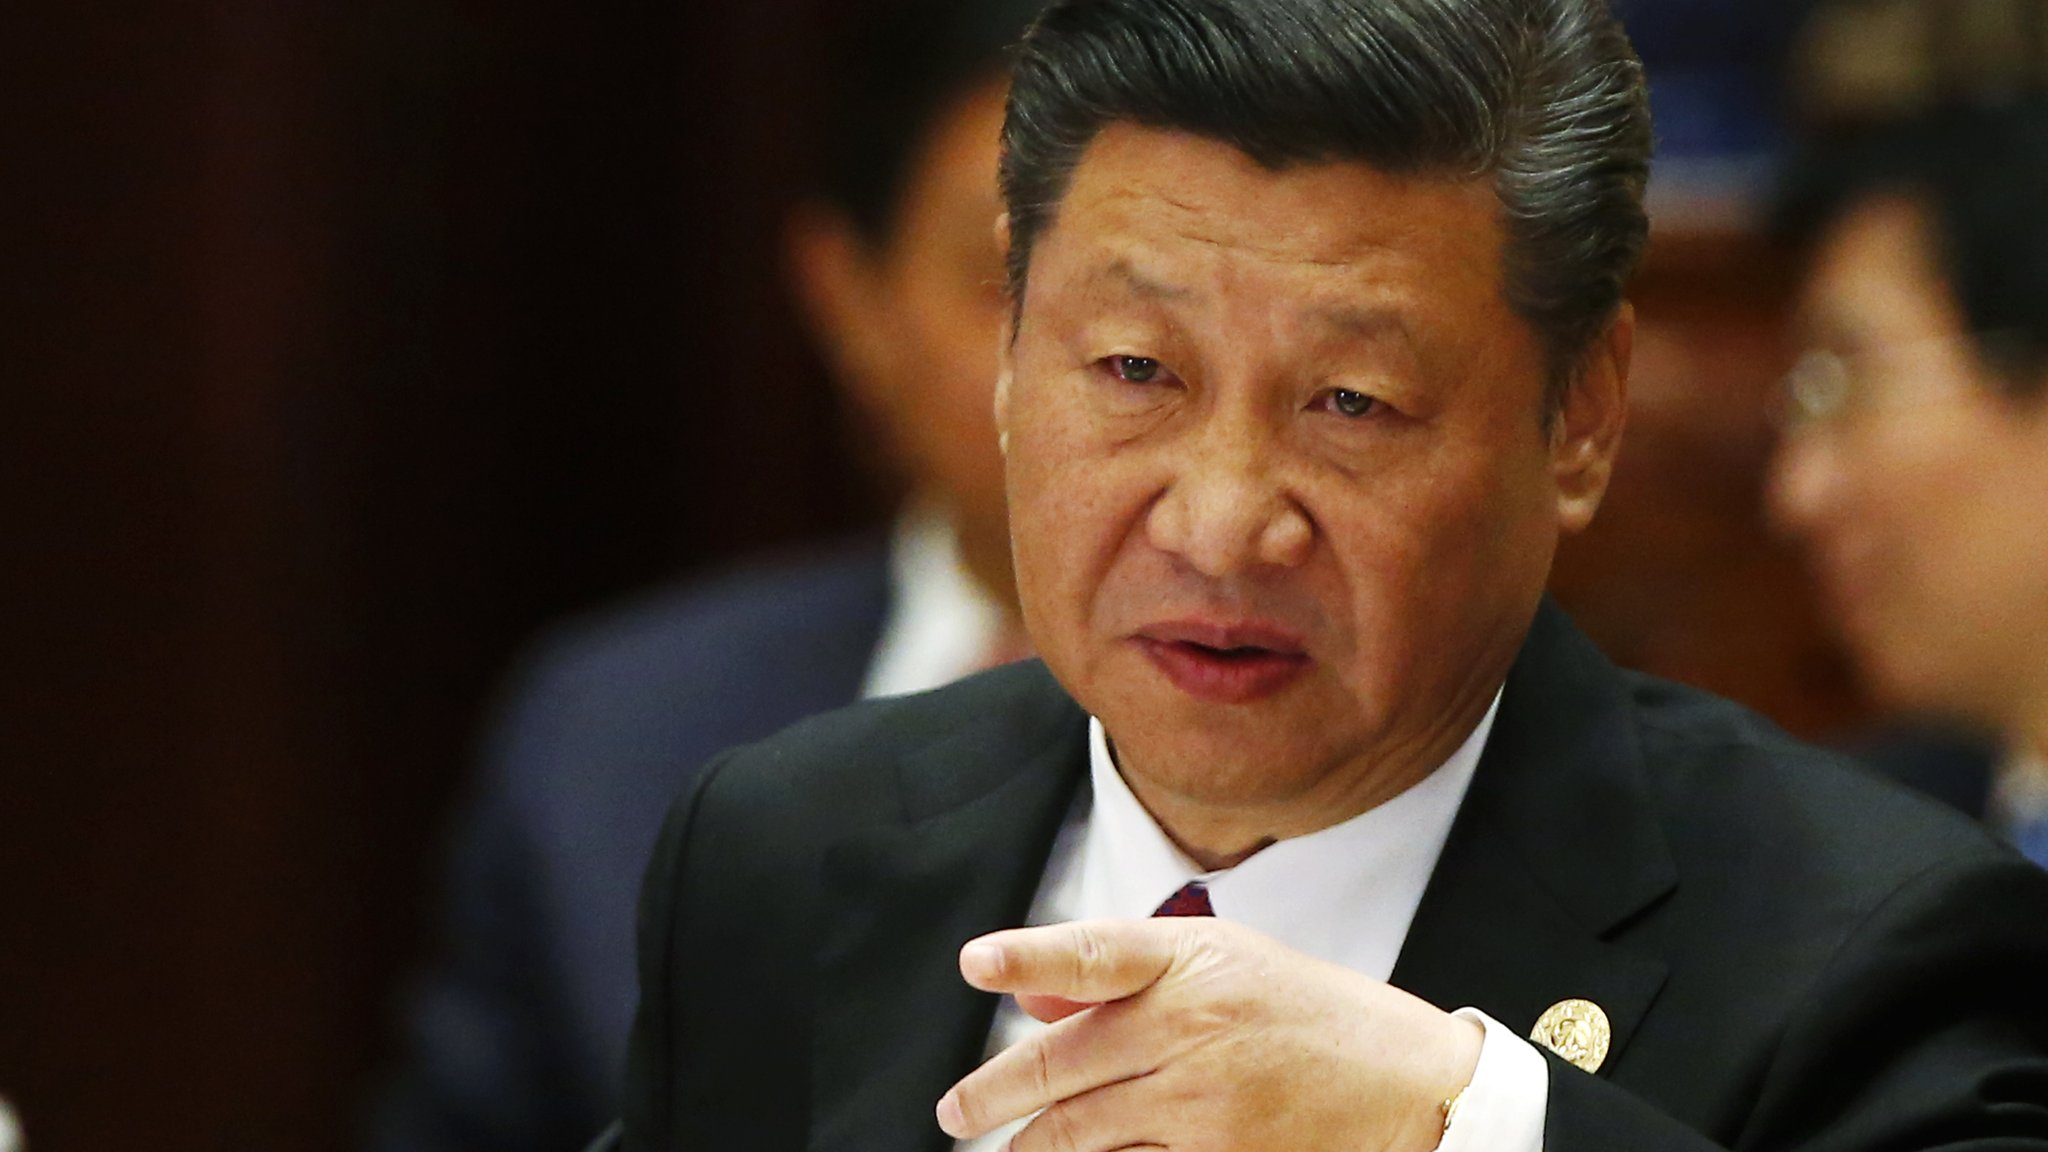 Top Chinese officials 'plotted to overthrow Xi Jinping'